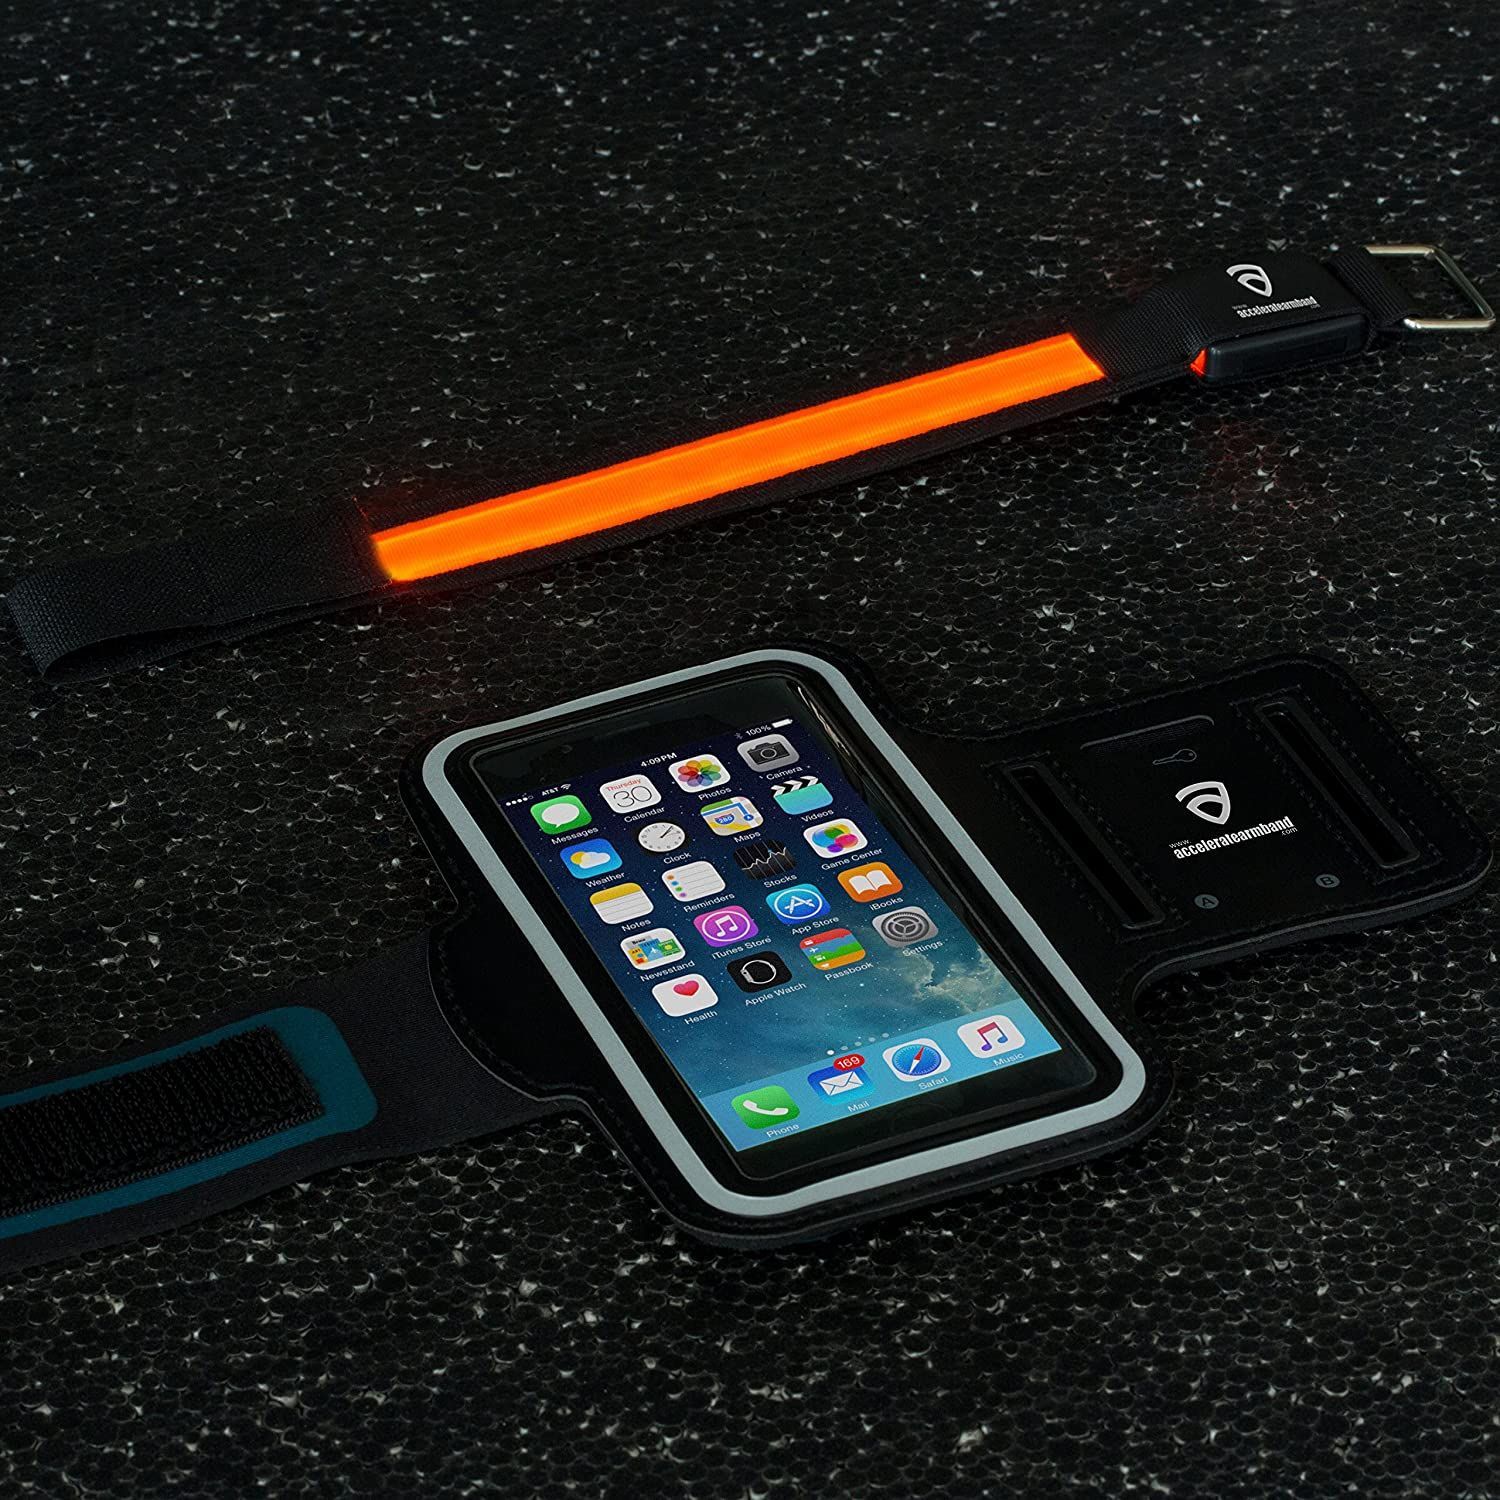 Amazon Accelerate Armband BONUS Accelerate LED Safety Bracelet Fits iPhone 6 6S 4 7 Inch Galaxy S3 S4 iPhone 5 5C 5S Sports Armband Cell